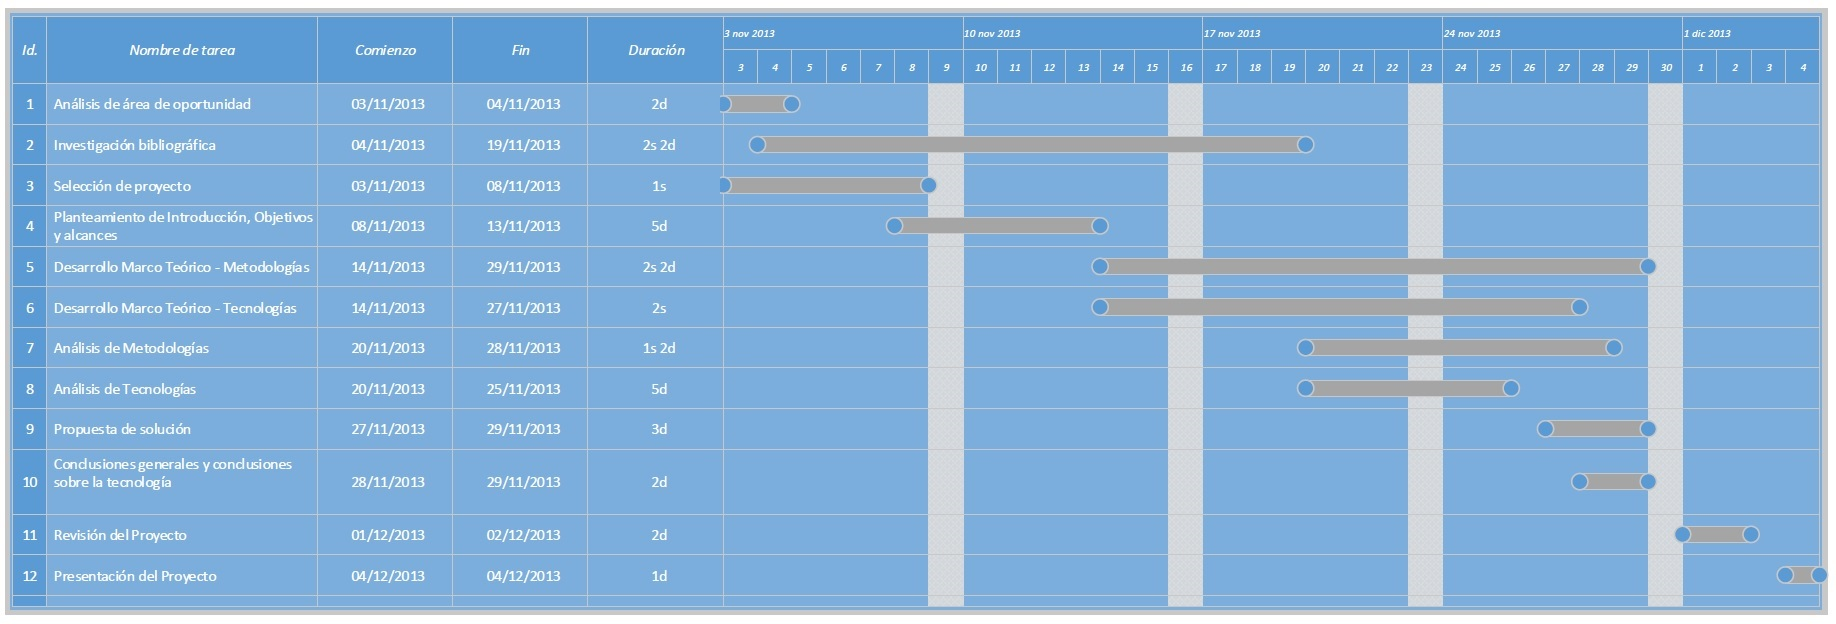 Plan general del trabajo - Diagrama de Gantt